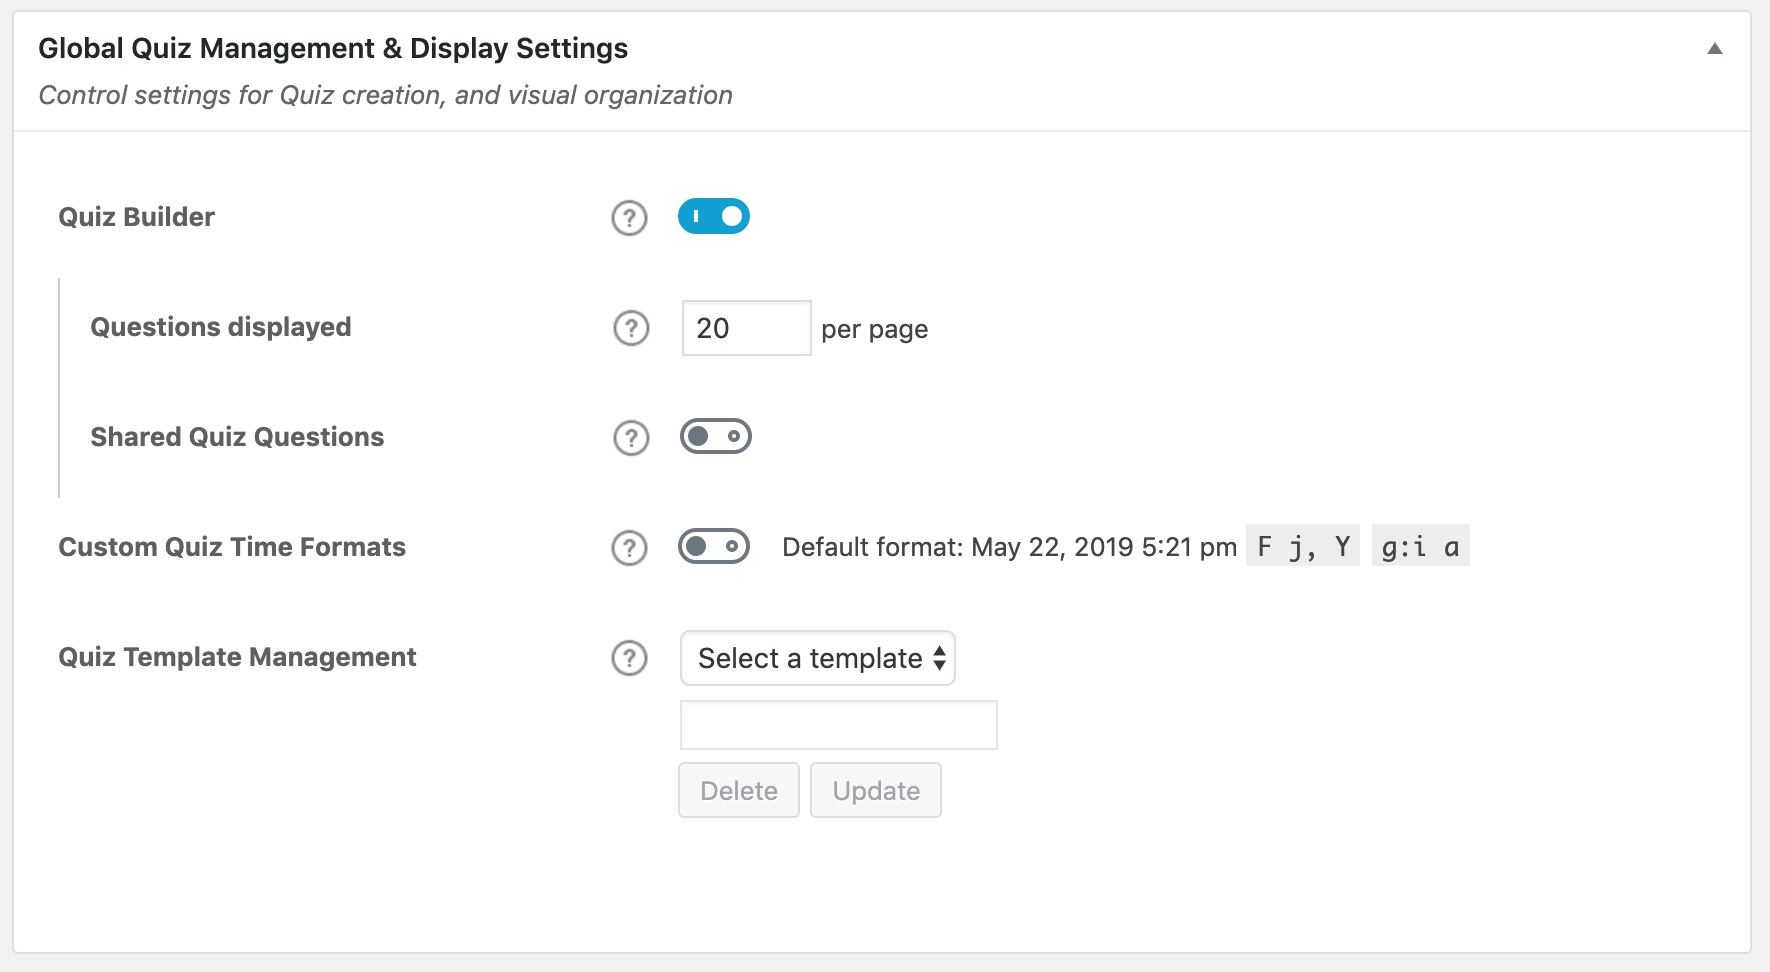 LearnDash quiz management & display settings